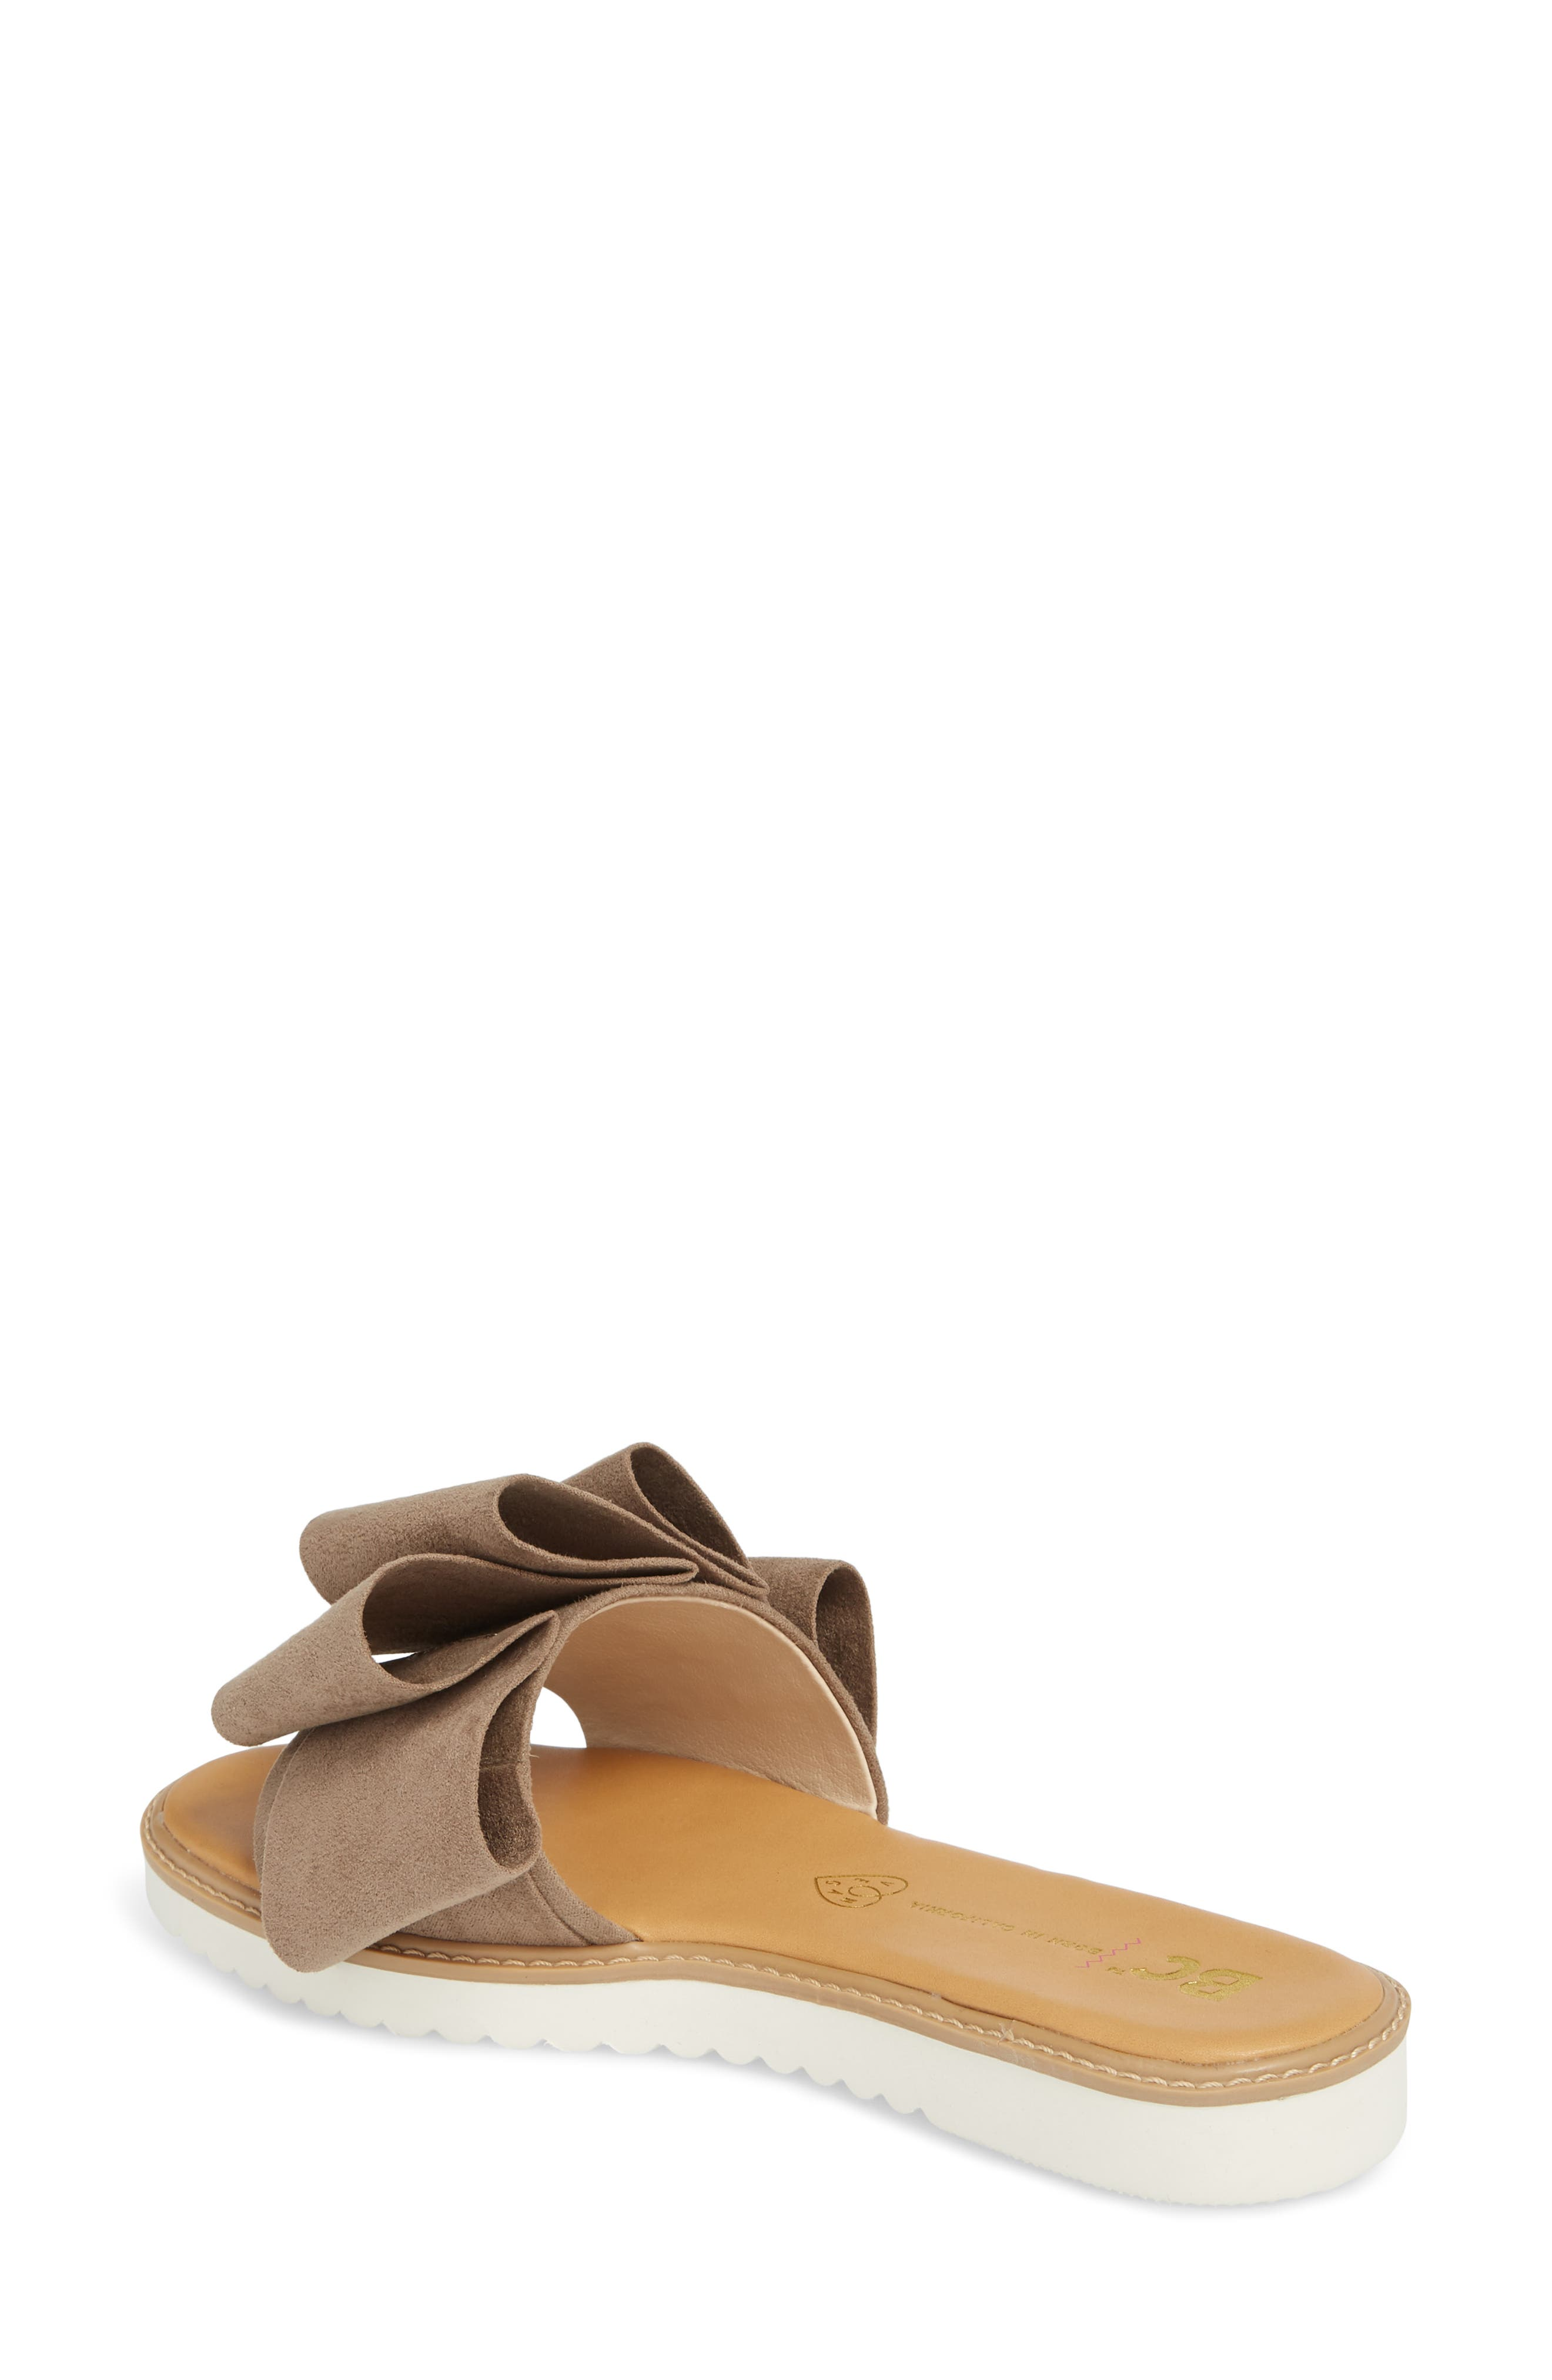 Fun for All Ages Pleated Sandal,                             Alternate thumbnail 2, color,                             TAUPE SUEDE